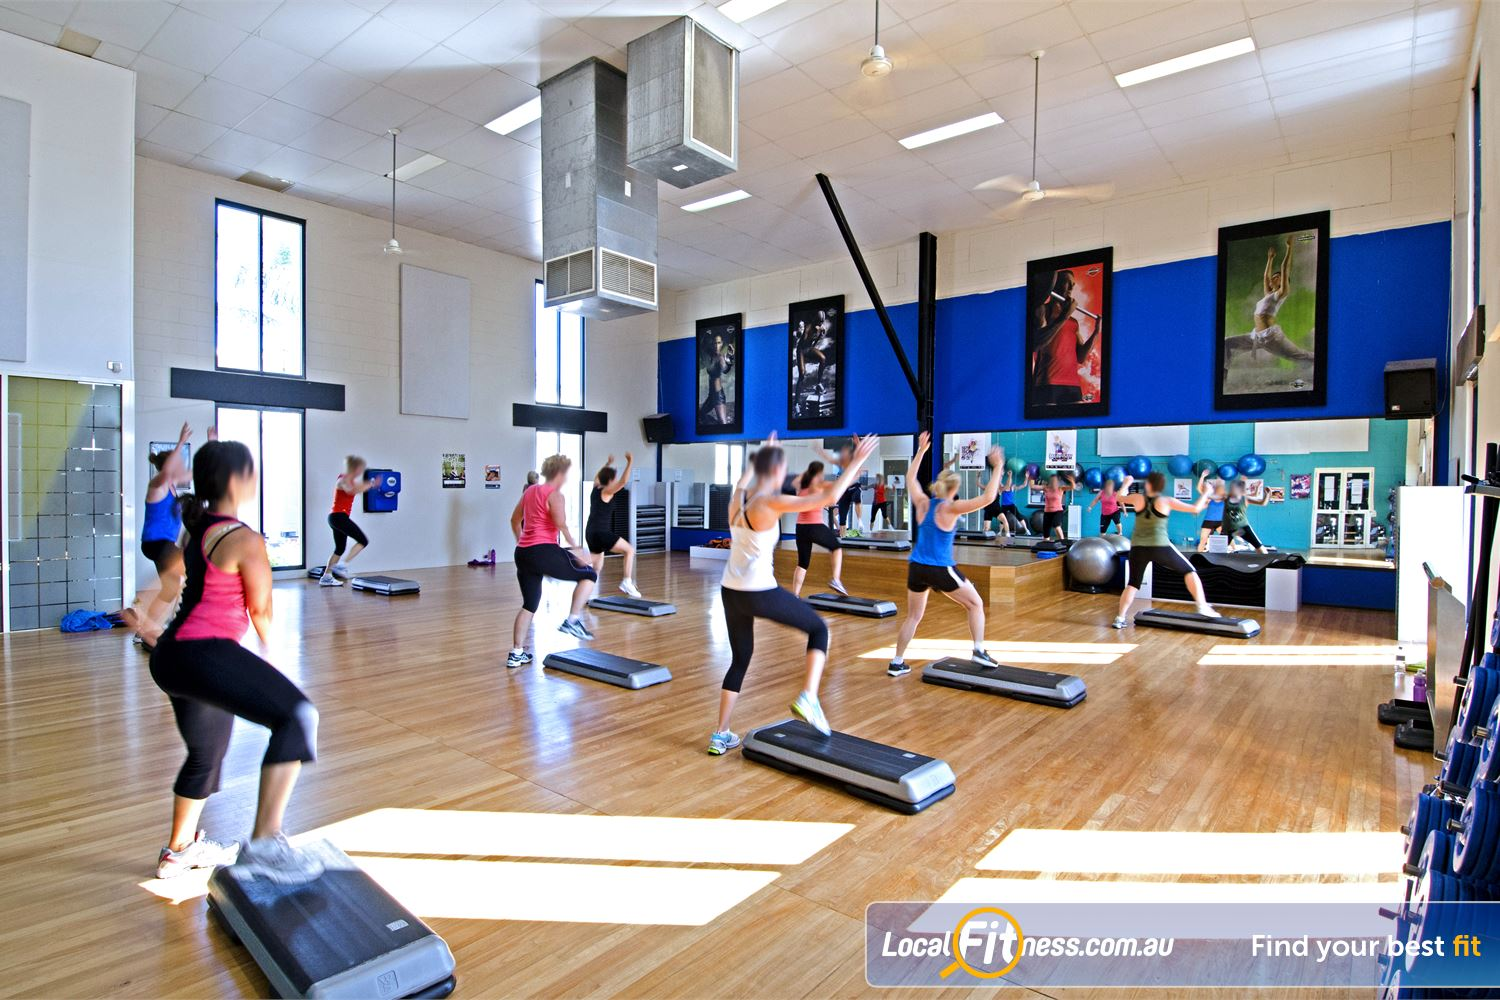 Goodlife Health Clubs Graceville The dedicated and spacious Graceville group fitness studio.